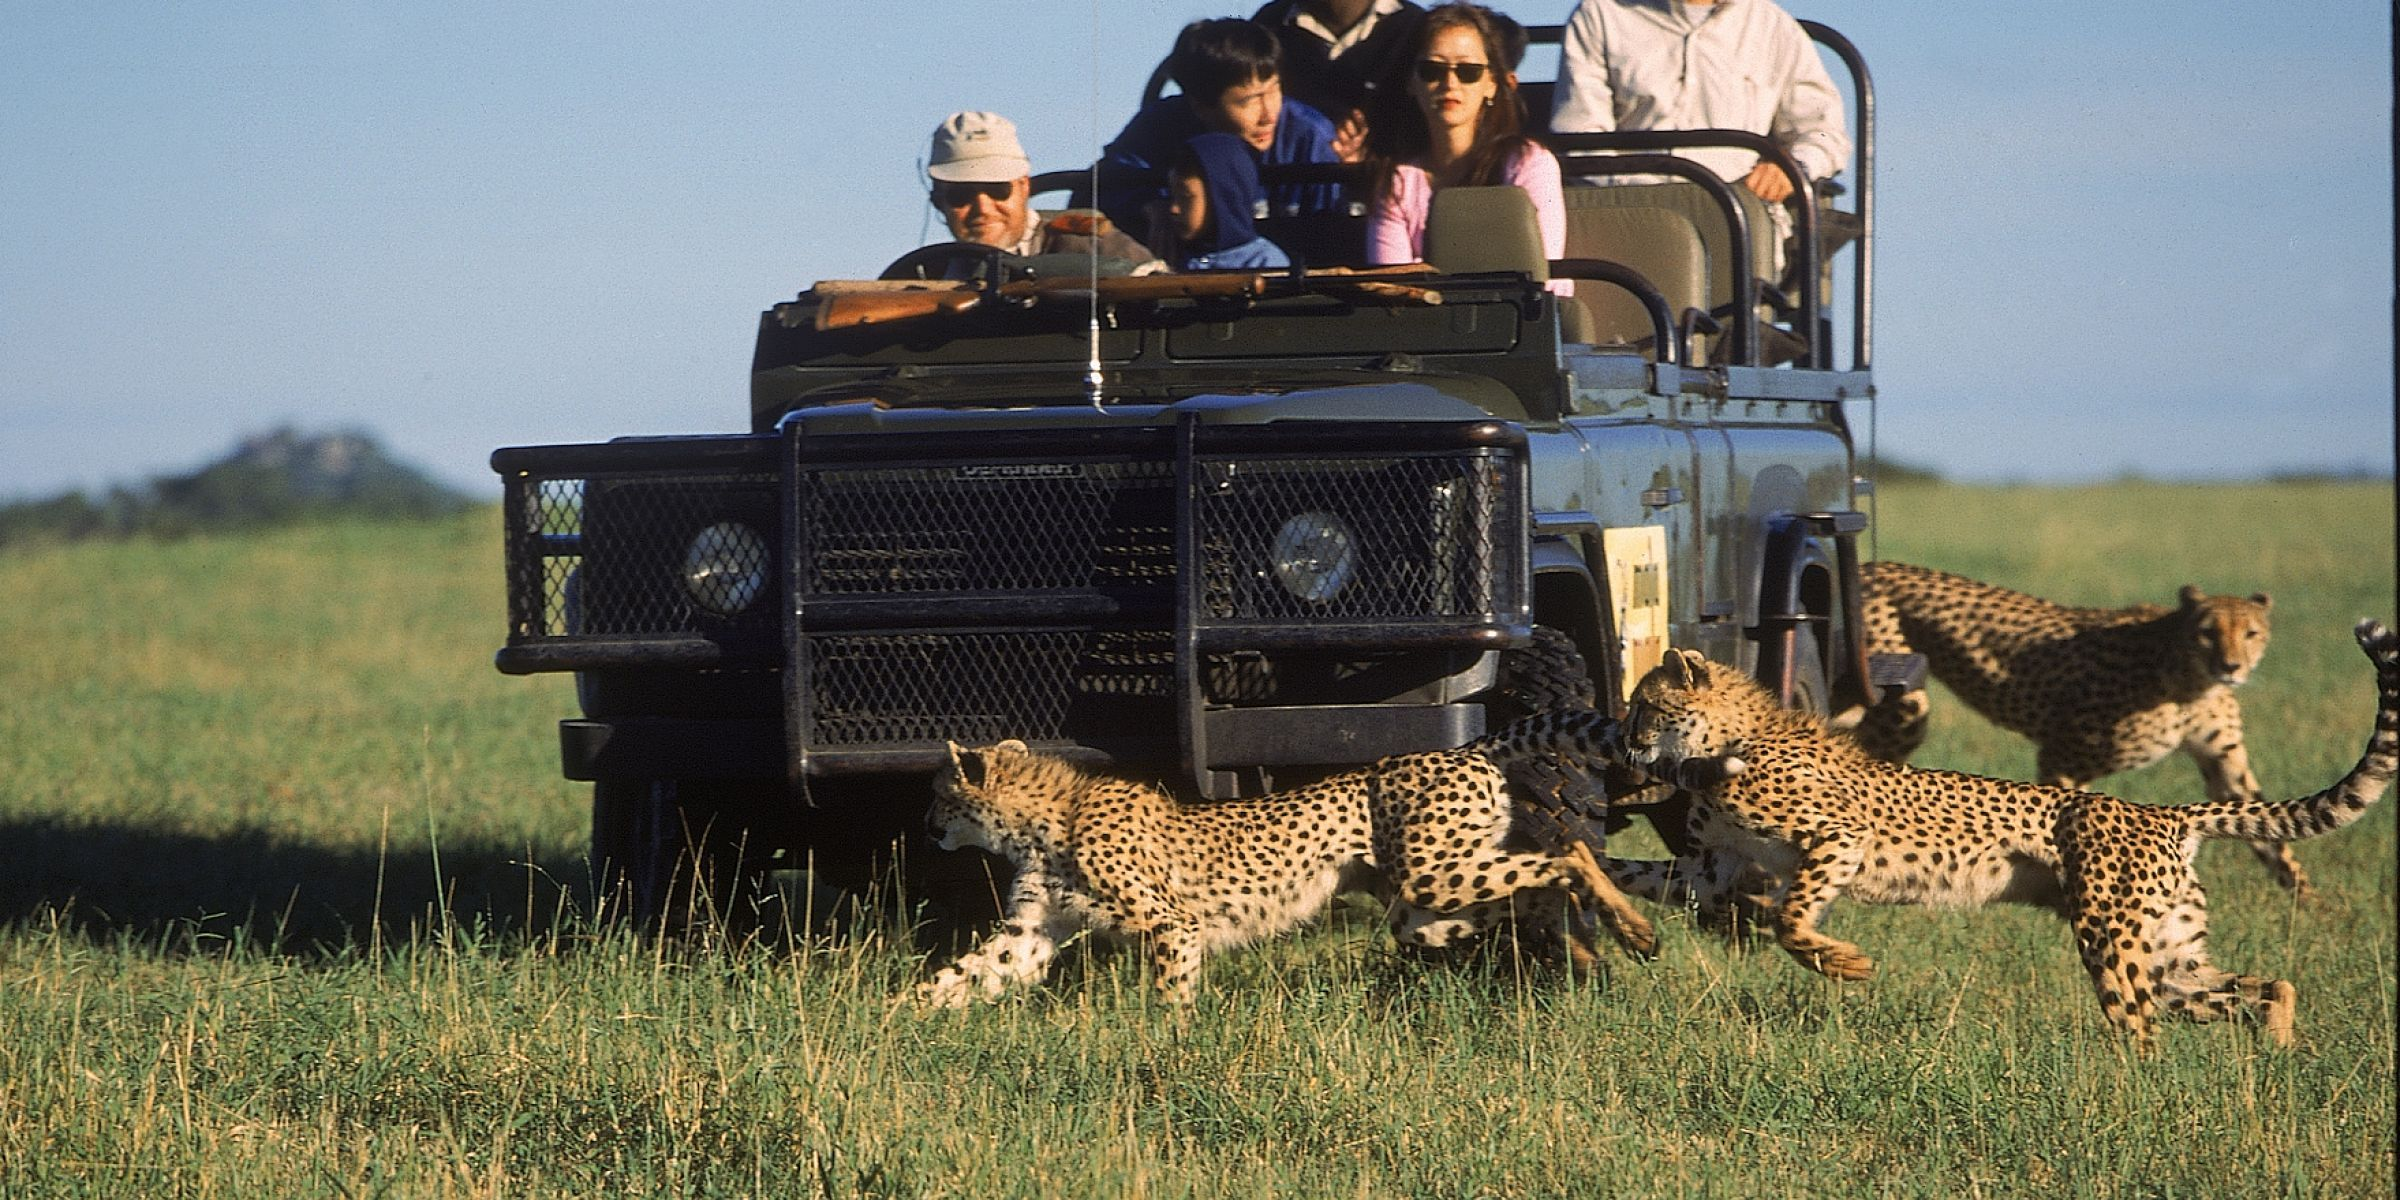 mala-mala-sable-camp-sabi-sand-game-reserve-south-africa-1340